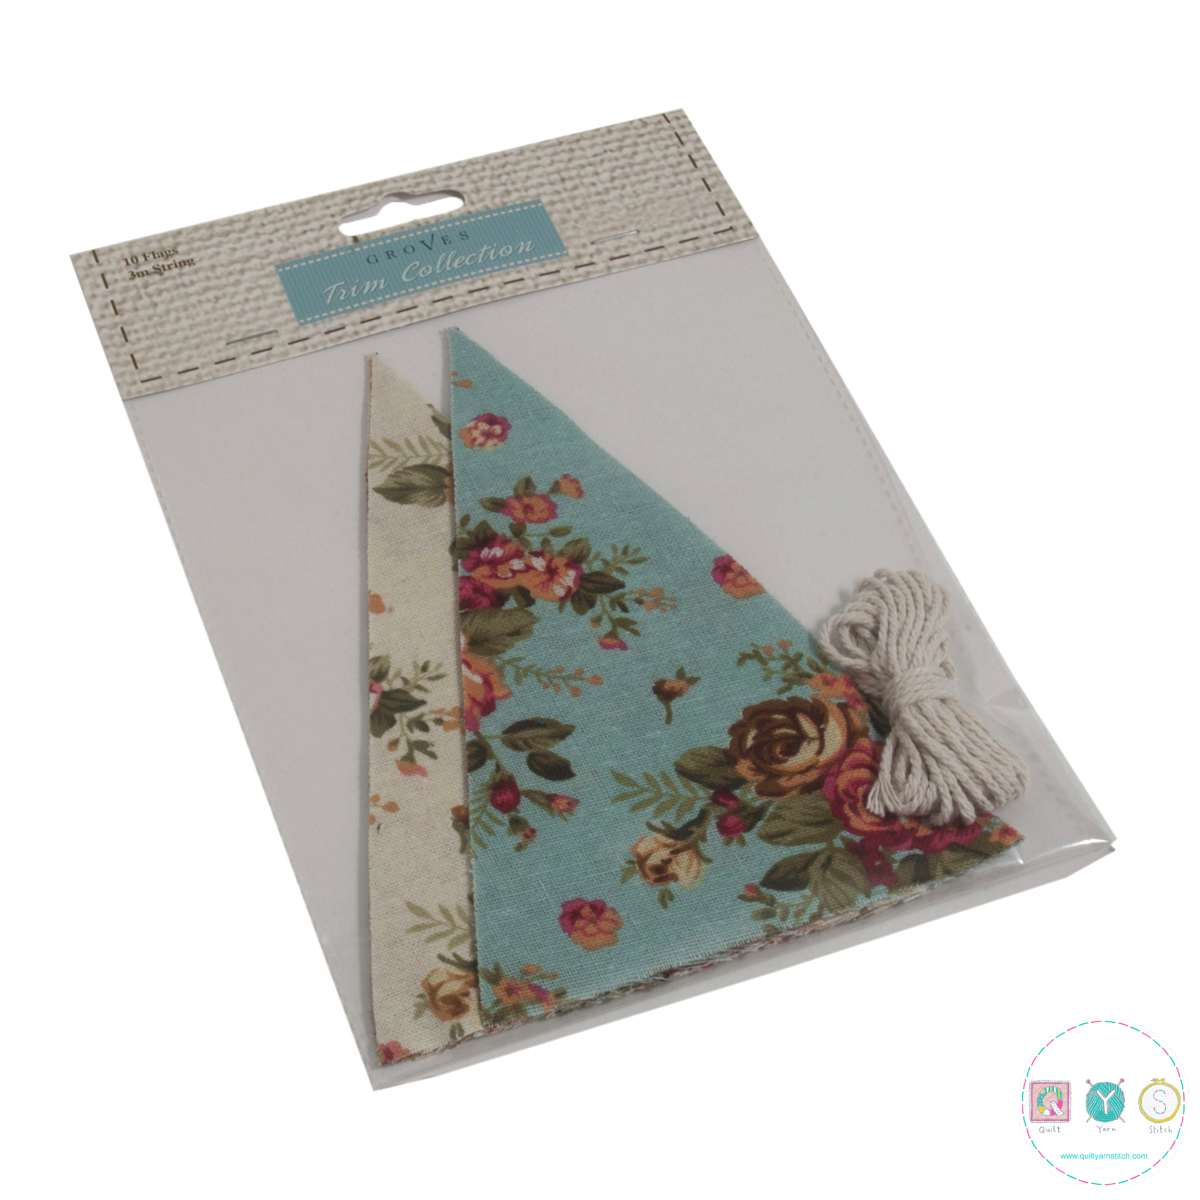 Sew Your Own Bunting - Easy Sew Kit - Blue & Cream Floral - Gift Ideas